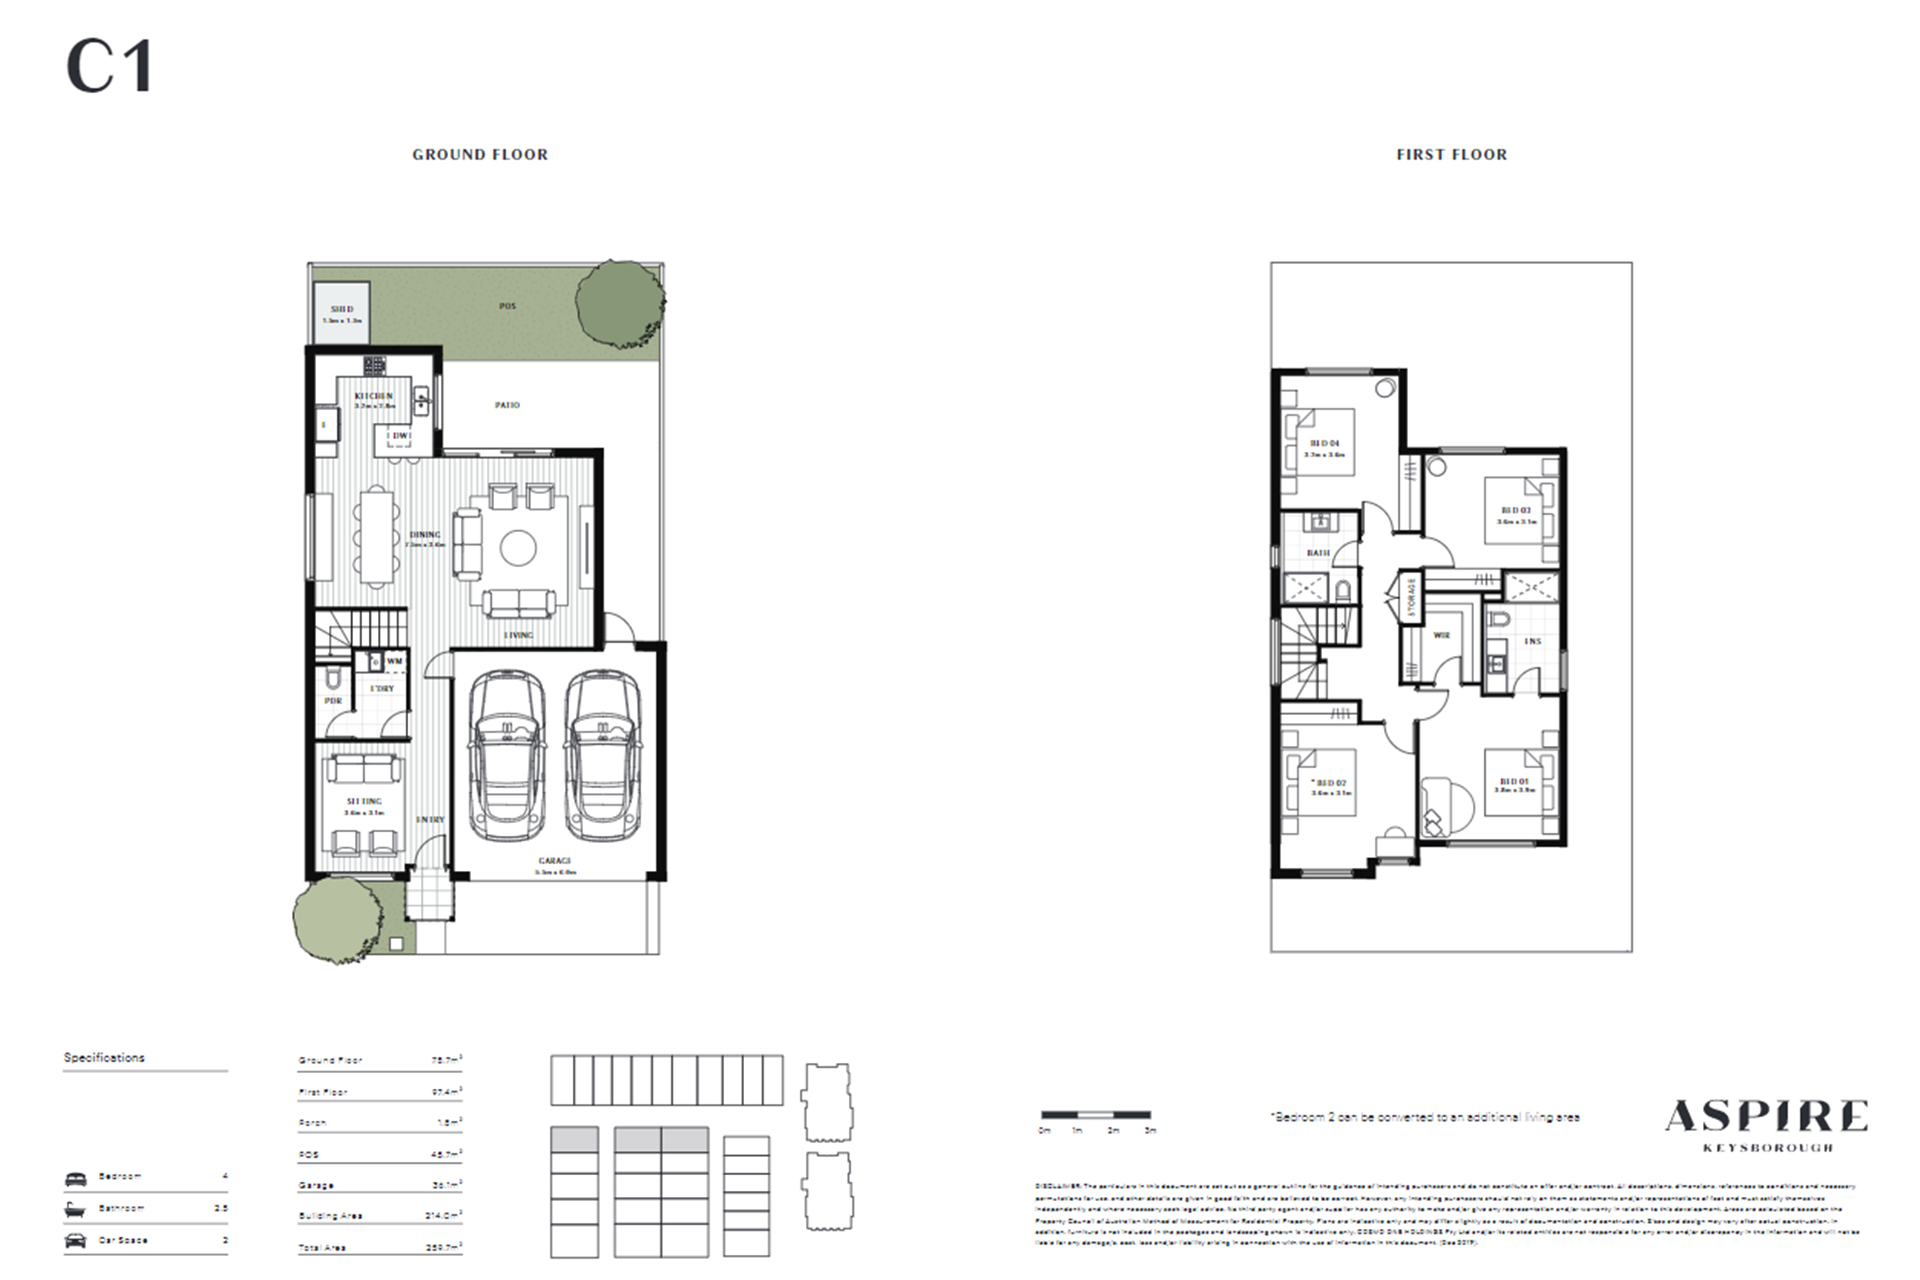 Aspire   C1 Floor Plan (Townhouse)